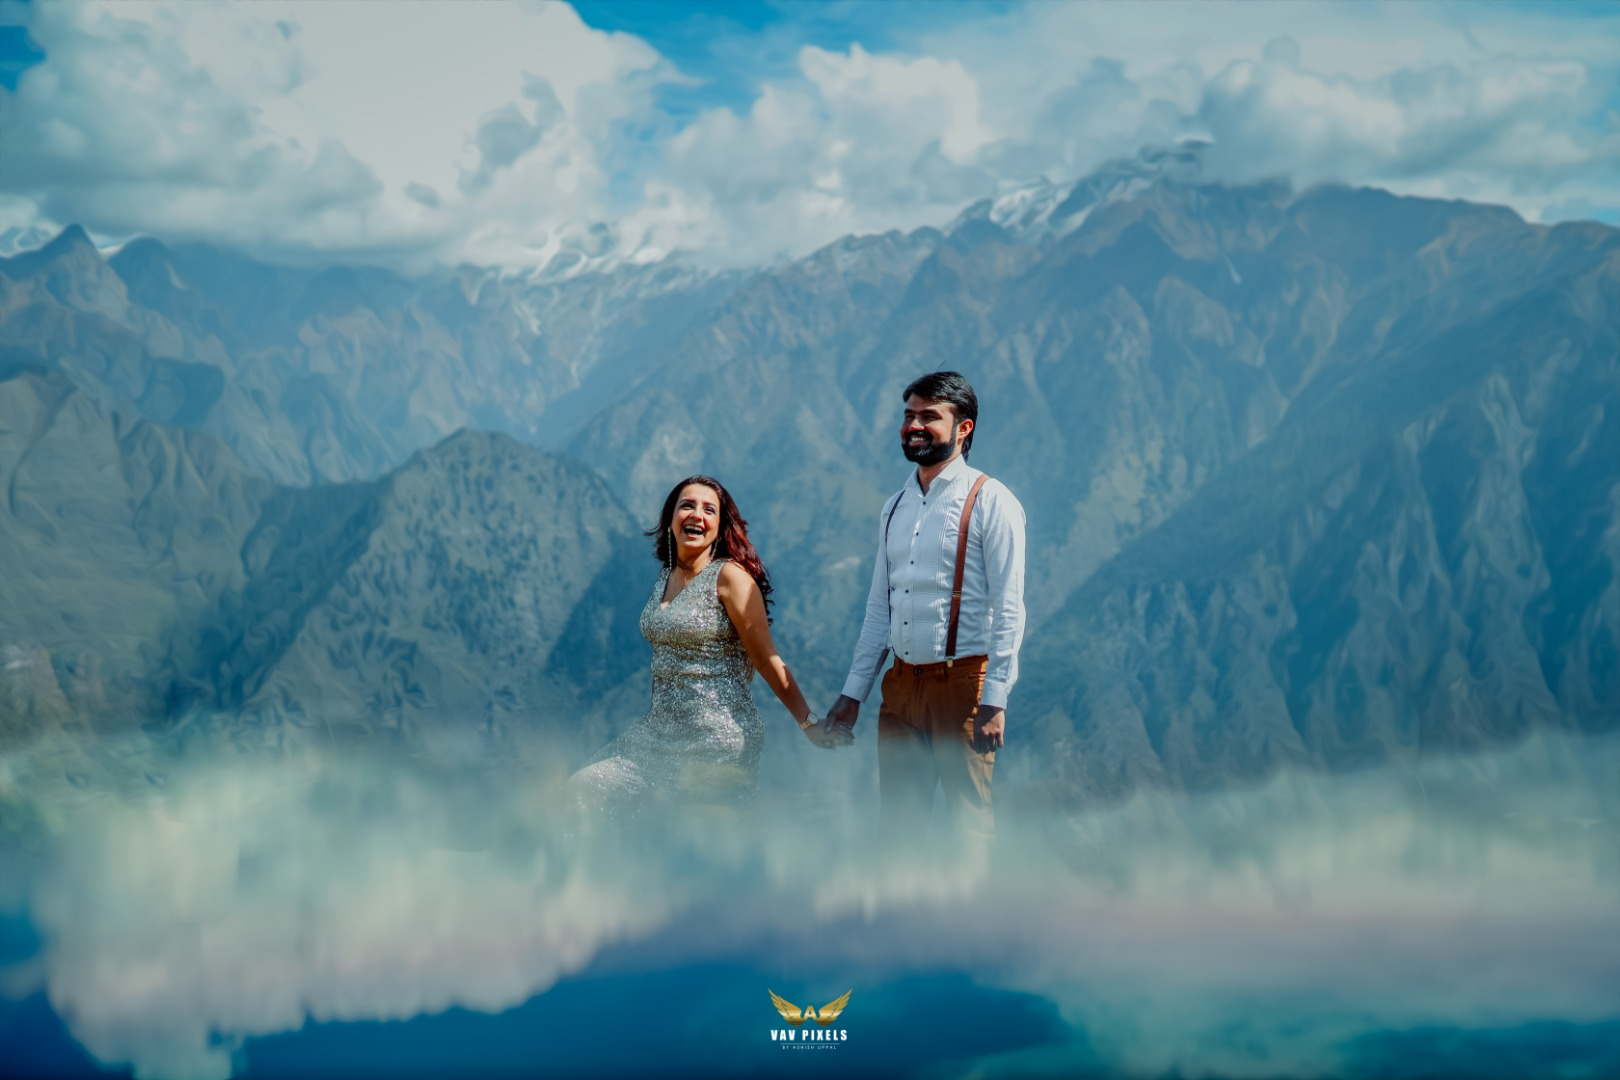 Spectacular Pre Wedding Mountain Photoshoot